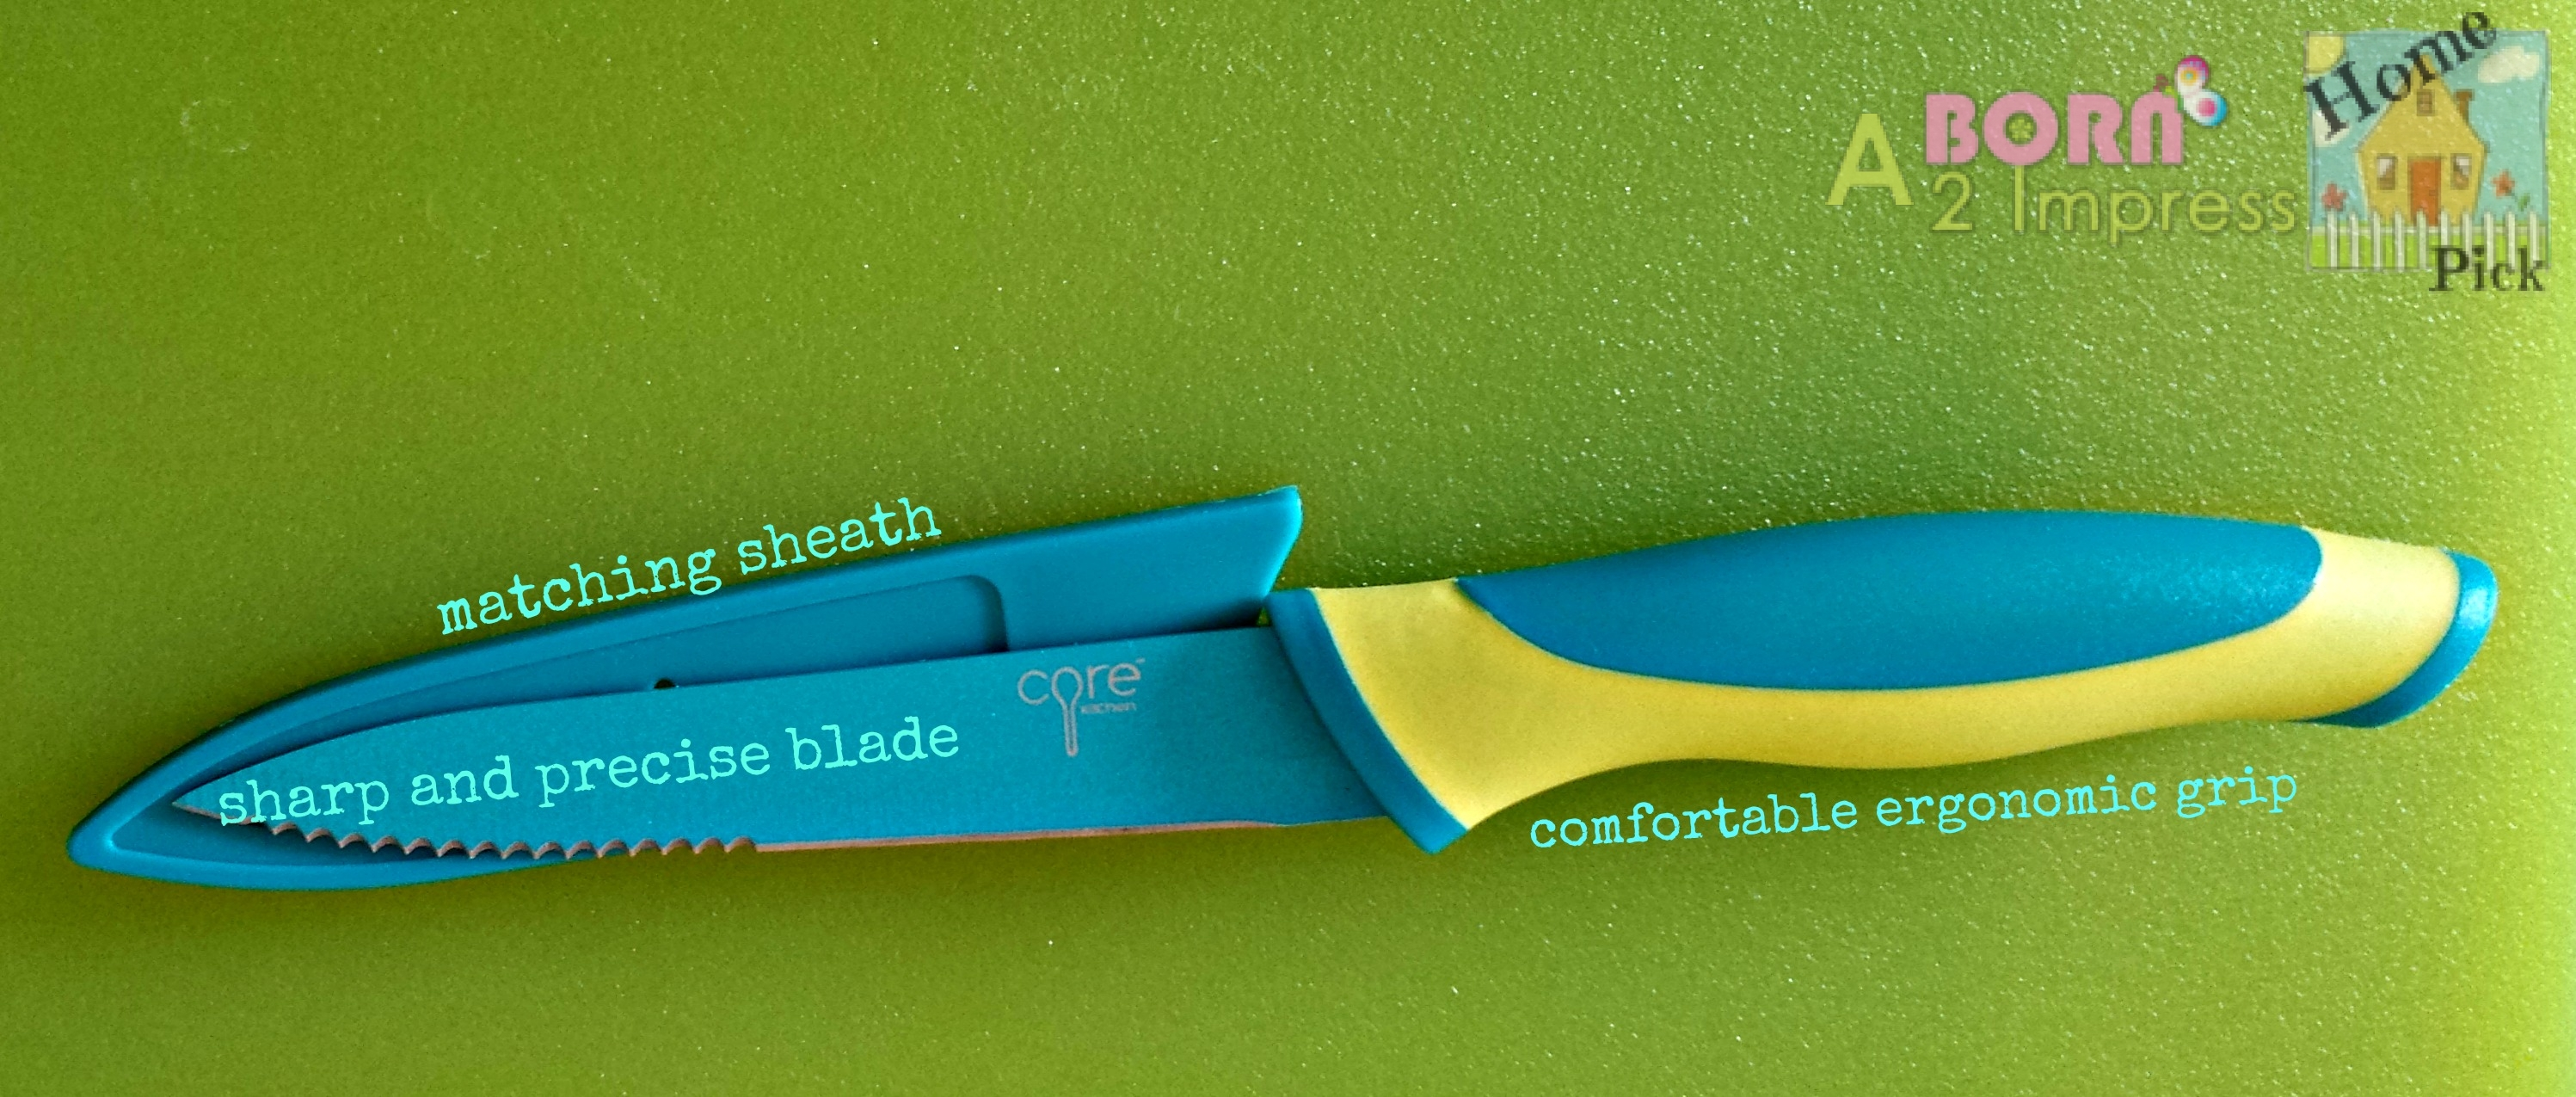 core kitchen knives review giveaway born impress japanese kitchen knives review kitchen zone